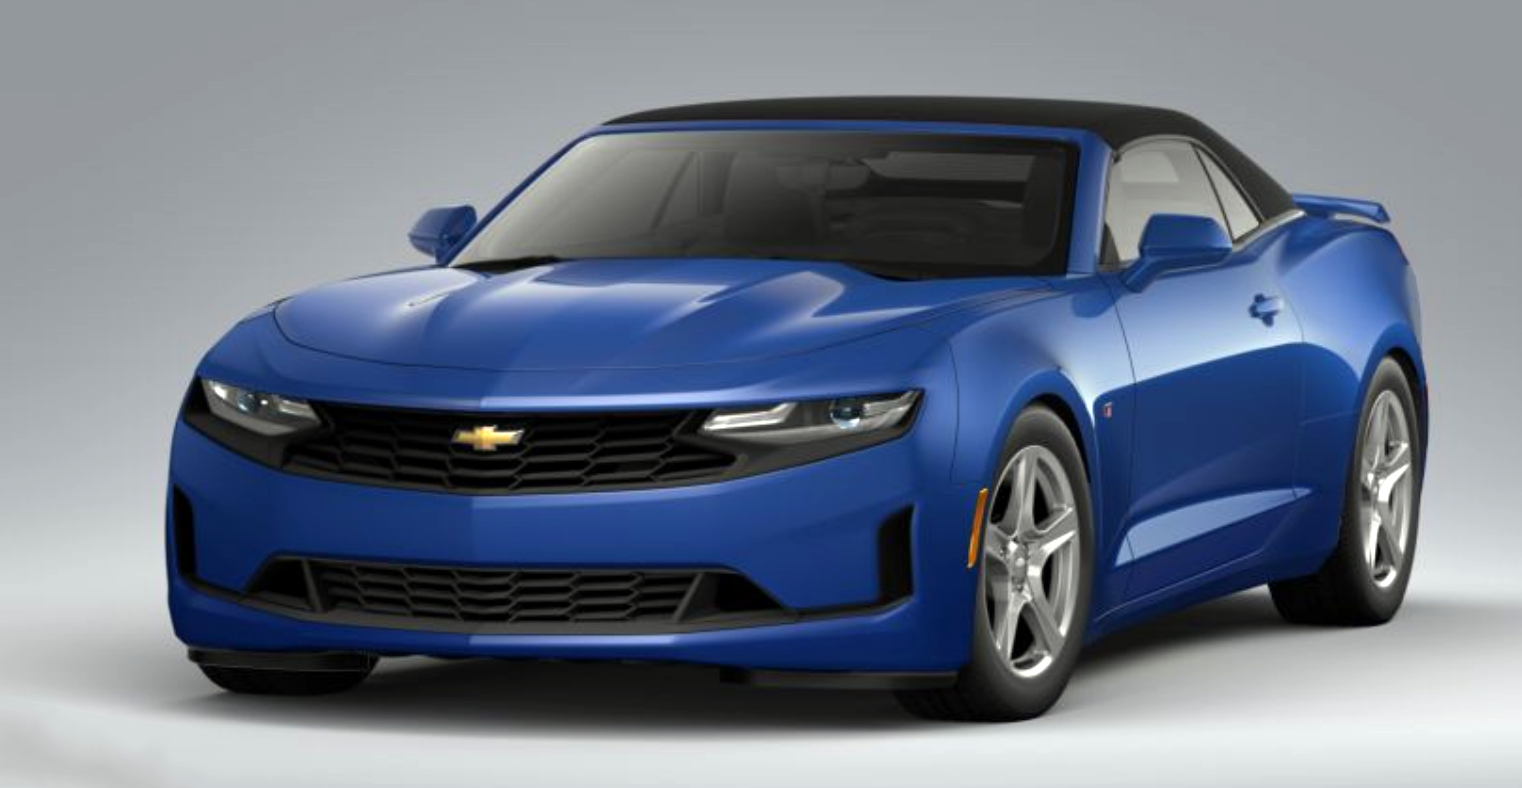 2020 Chevrolet Camaro 3LT in Riverside Blue